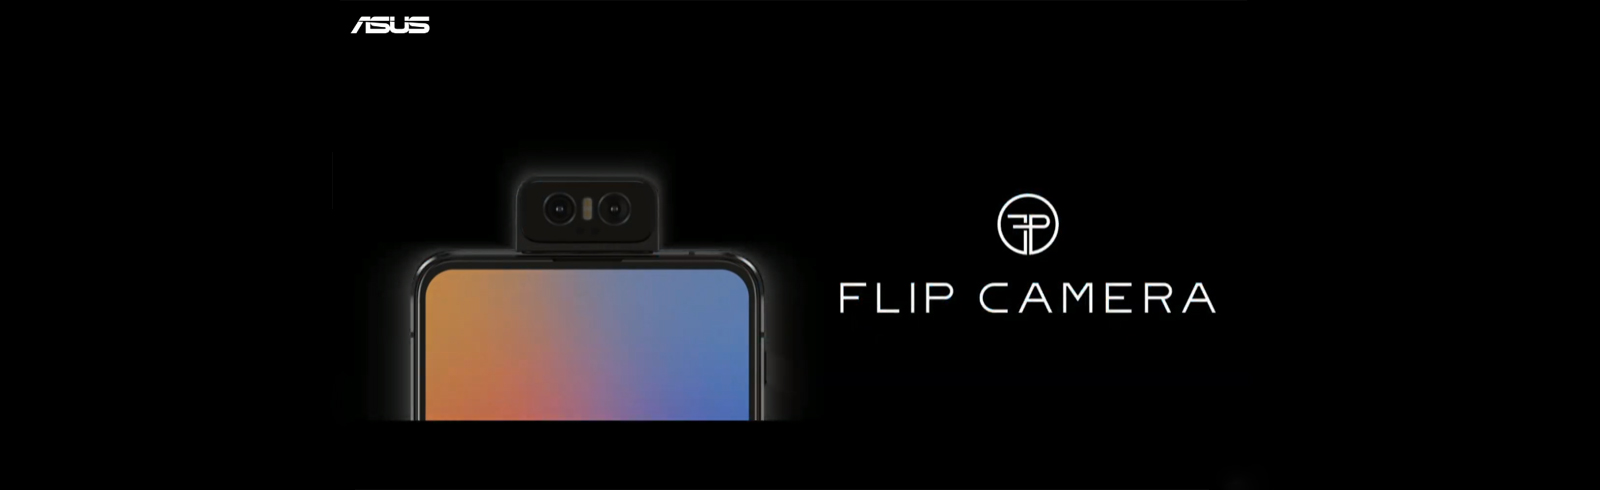 "Asus ZenFone 6 is official with a dual flip camera and a 6.4"" notchless display"